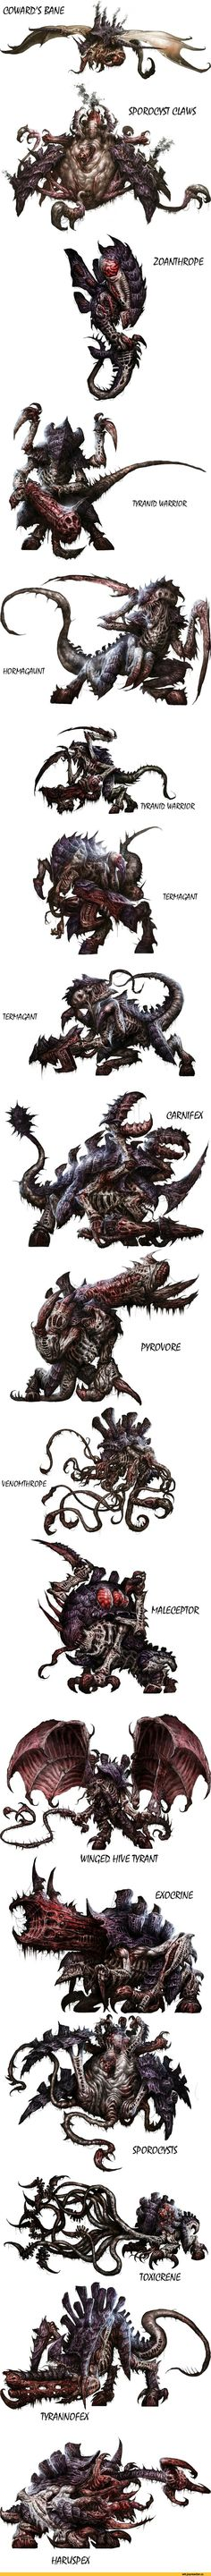 Tyranid art from Shield of Baal: Leviathan. Alien Creatures, Fantasy Creatures, Mythical Creatures, Warhammer 40k Tyranids, Warhammer 40k Art, Fantasy Monster, Monster Art, Creature Feature, Creature Design